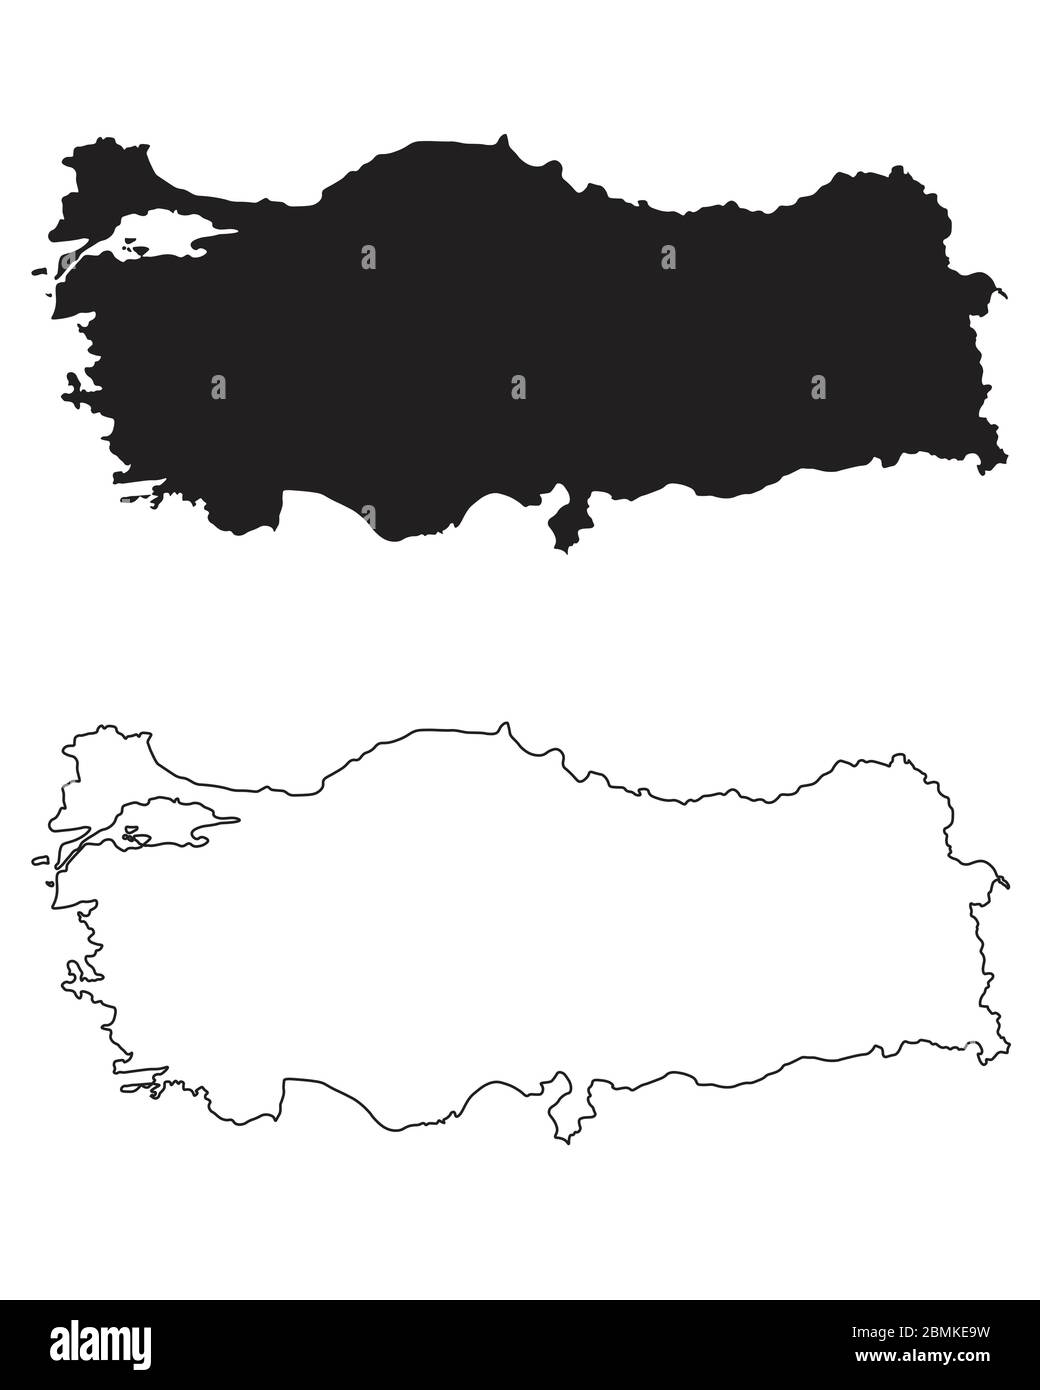 Turkey Country Map. Black silhouette and outline isolated on white background. EPS Vector Stock Vector